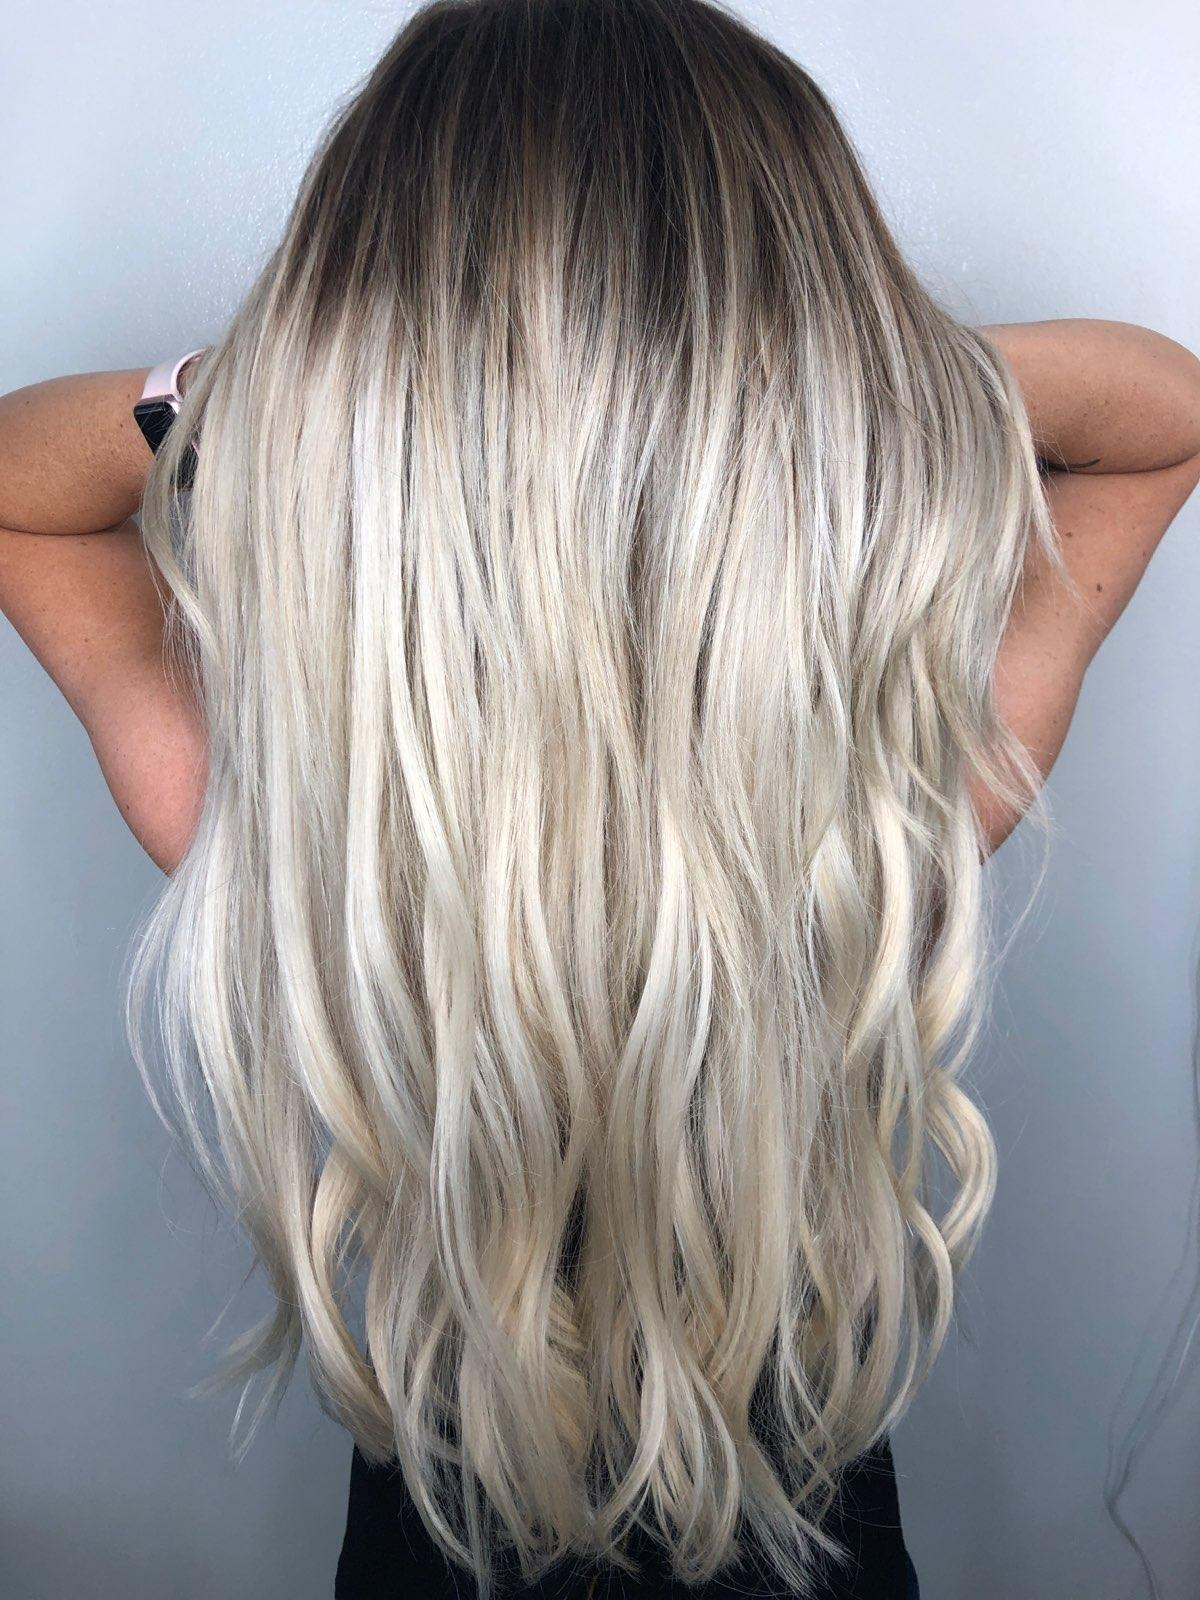 Why Should You Get Hair Extensions ?